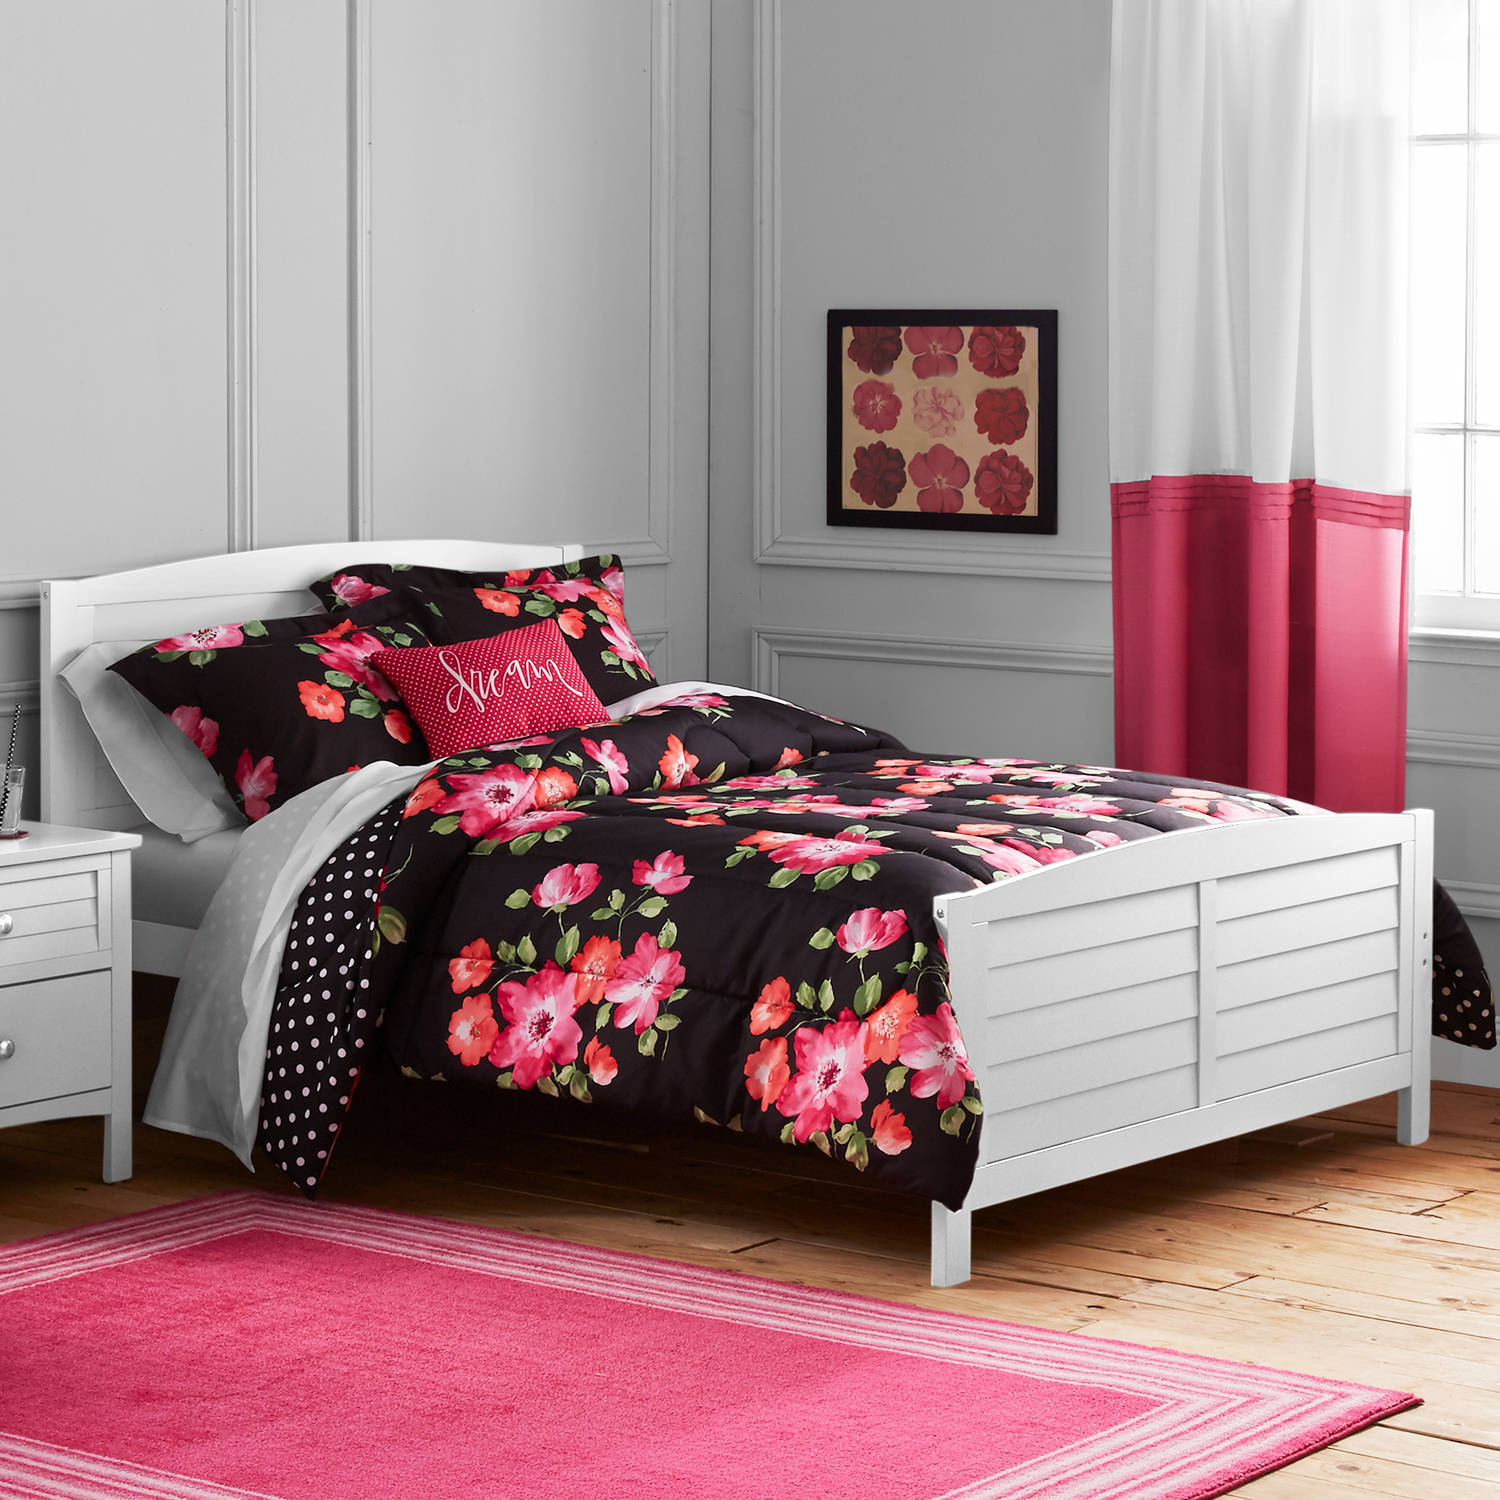 Better Homes and Gardens Kids Painterly Floral Comforter Set